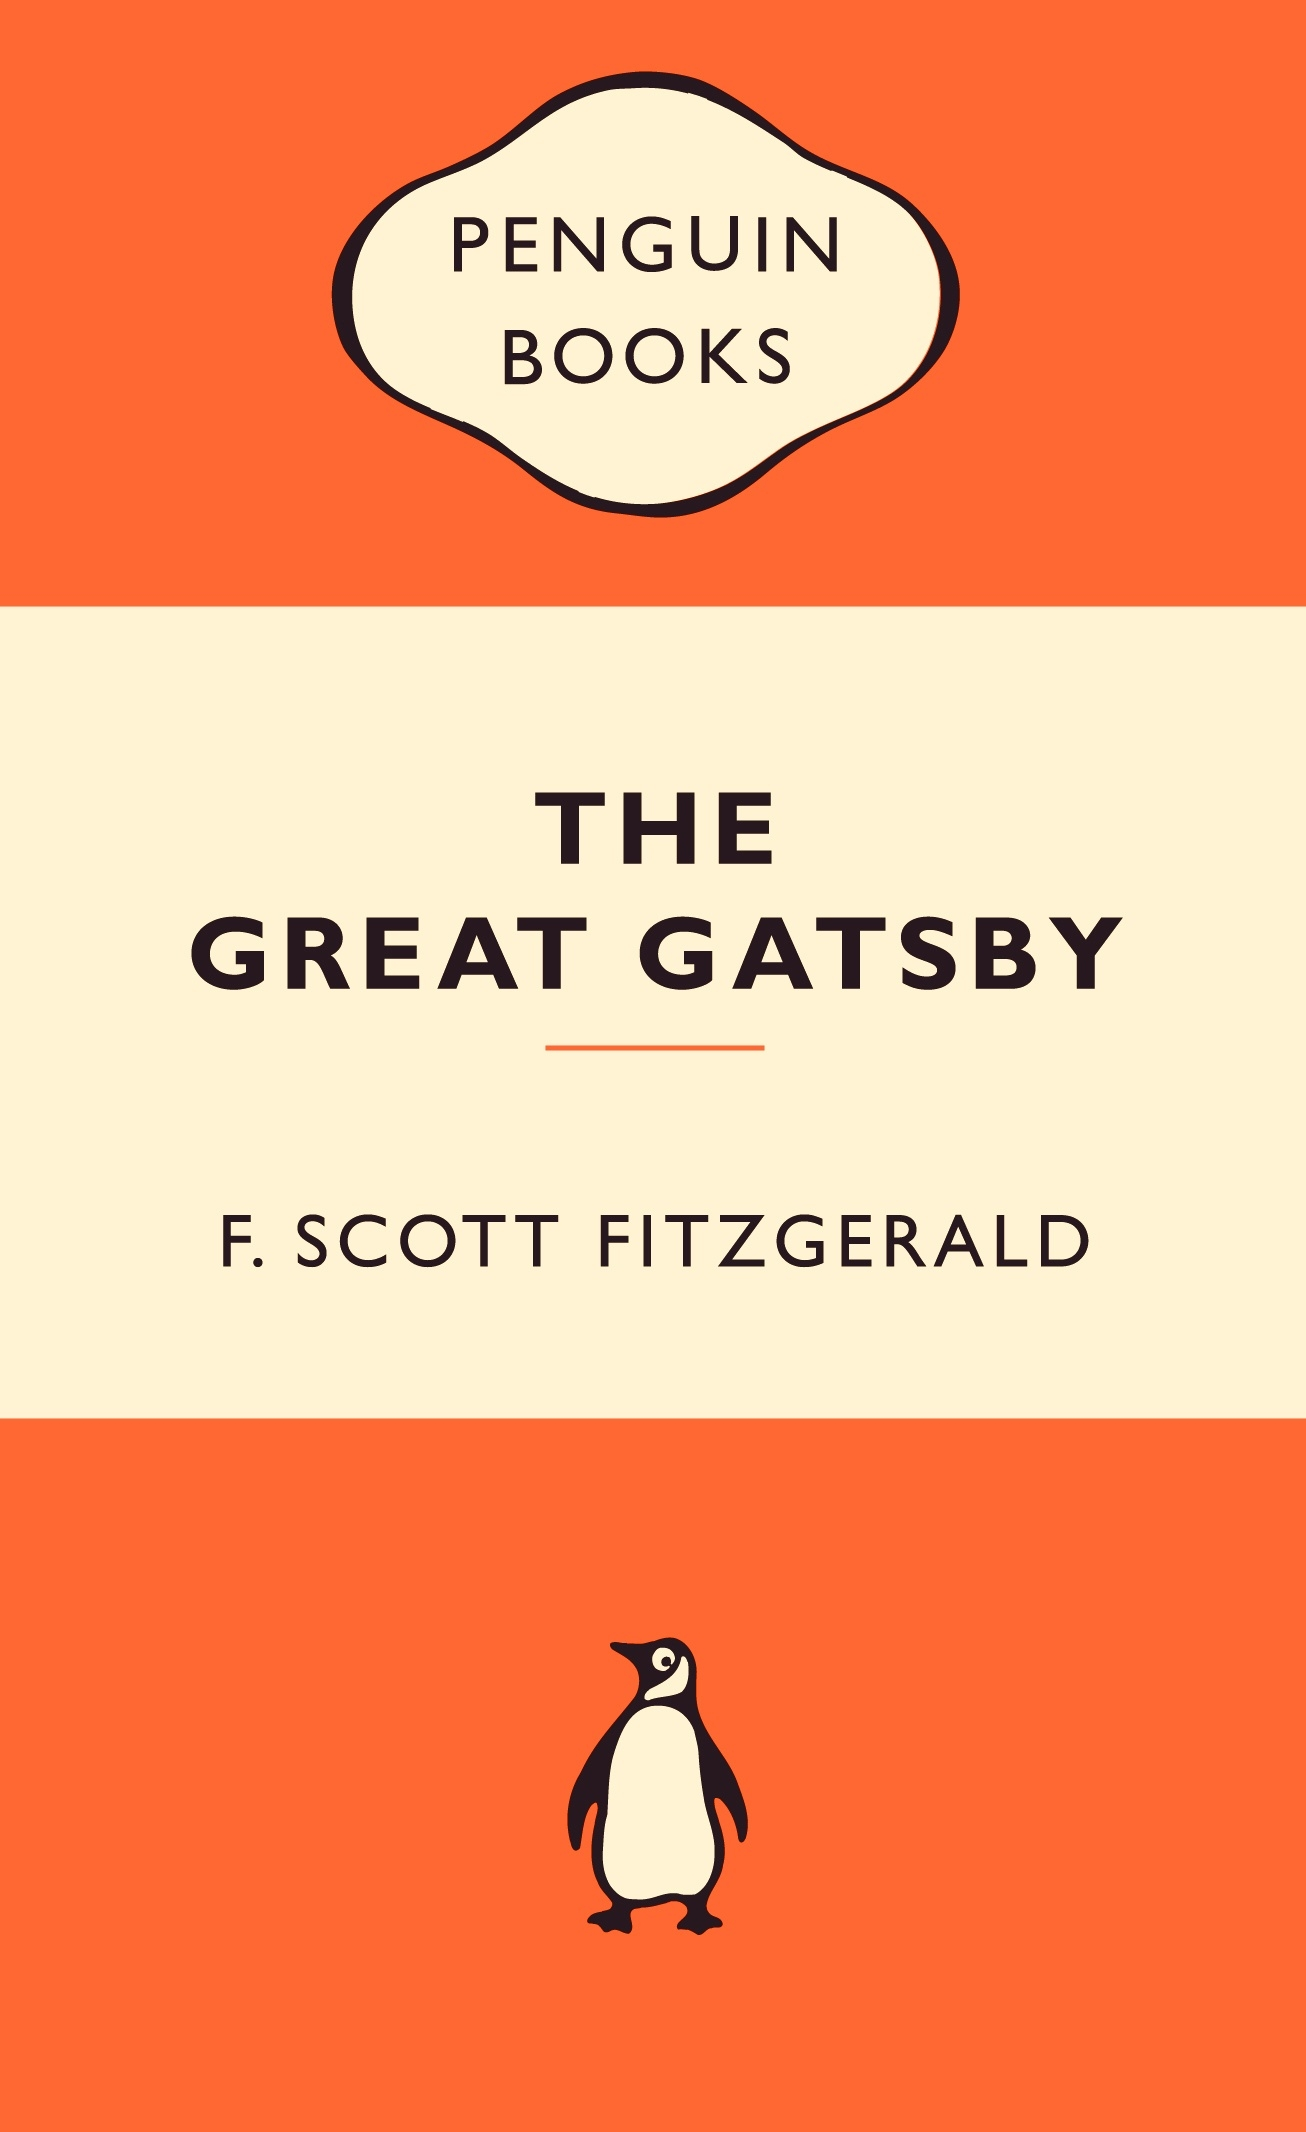 the great gatsby critical lens The great gatsby through the lens of marxist criticism marxist criticism is grounded in the economic and cultural theories of karl marx rather than viewing a text as.